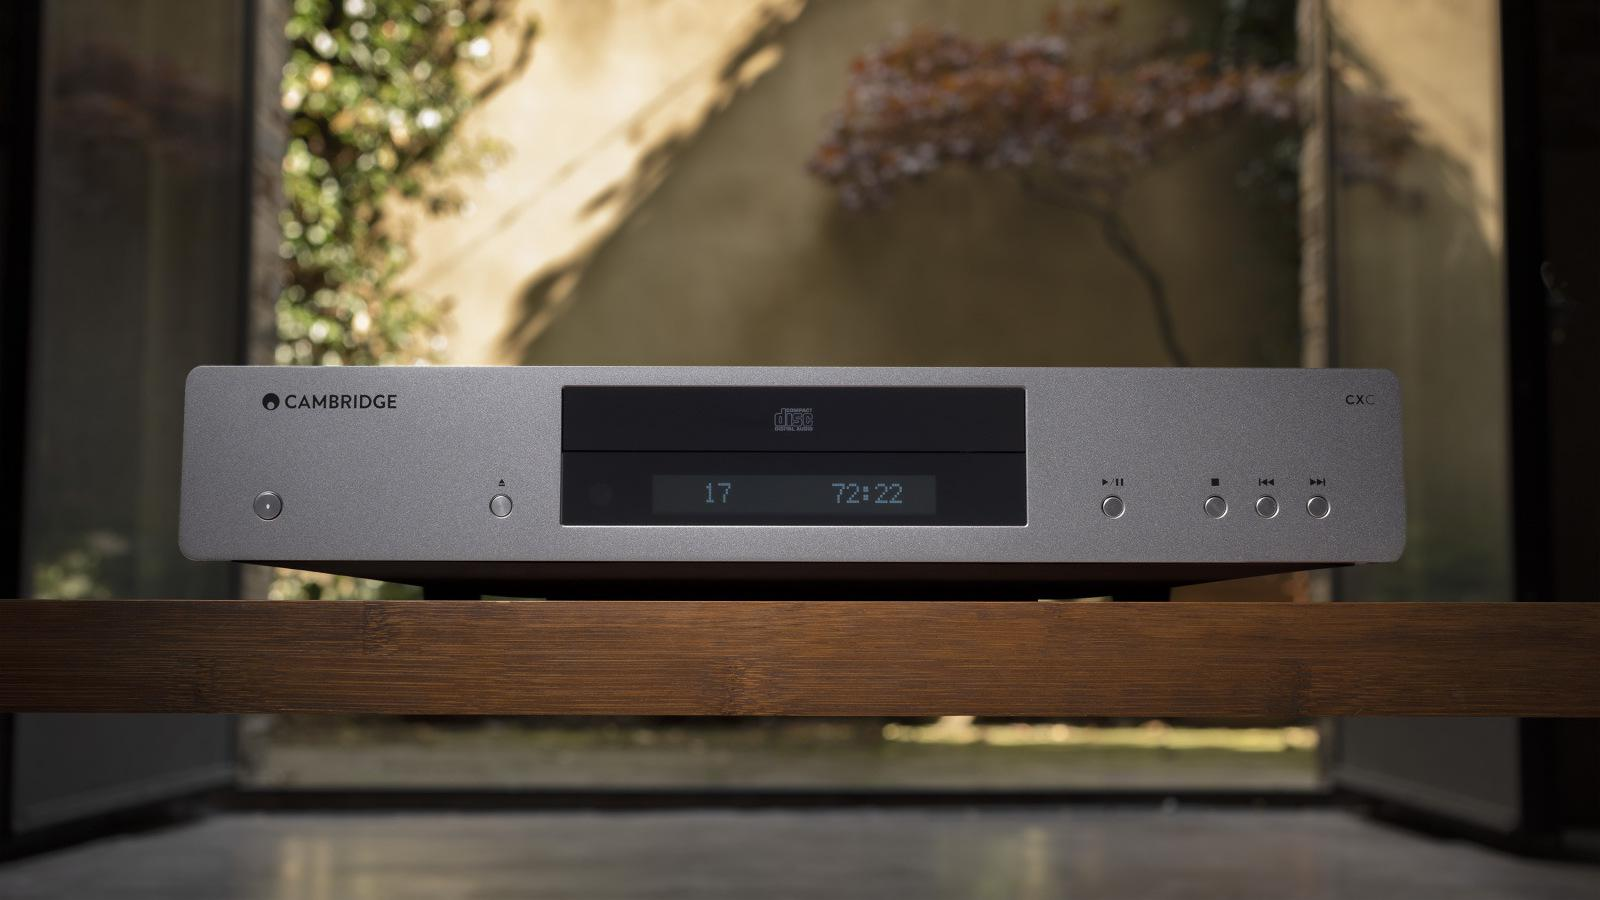 Cambridge Audio Cx Series 2 CXC CD Player